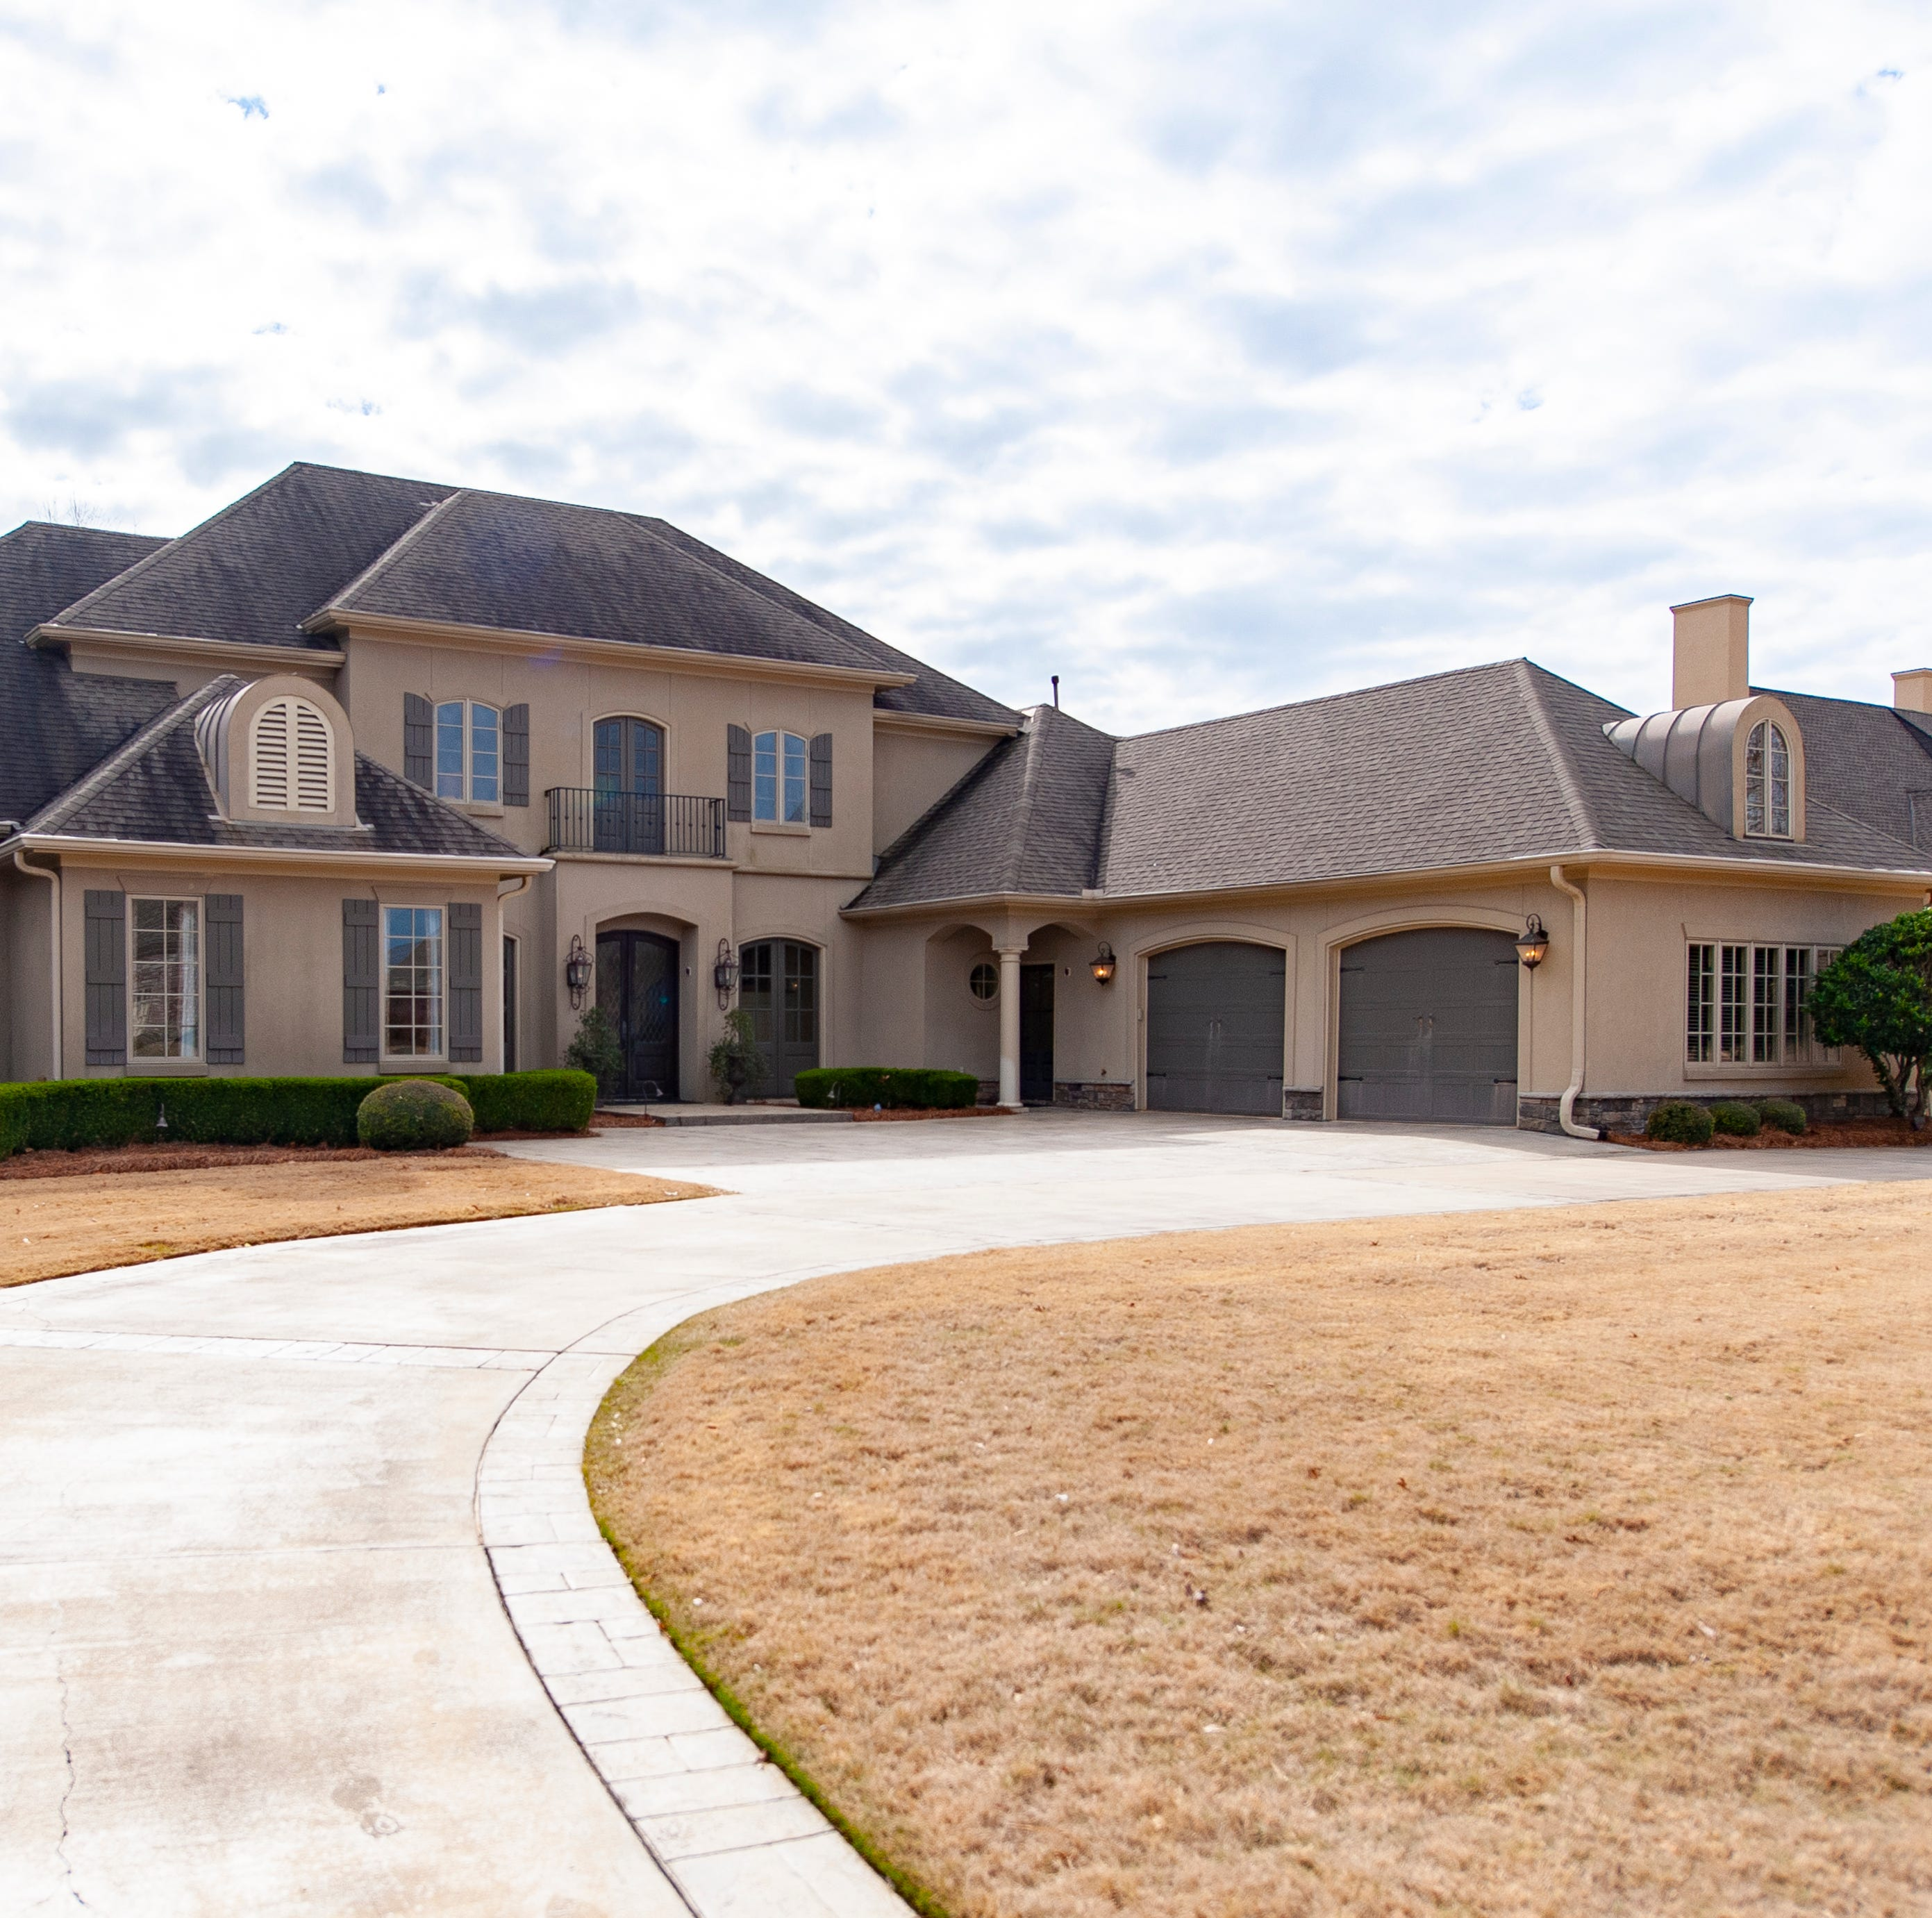 Wynlakes provides variety of homes